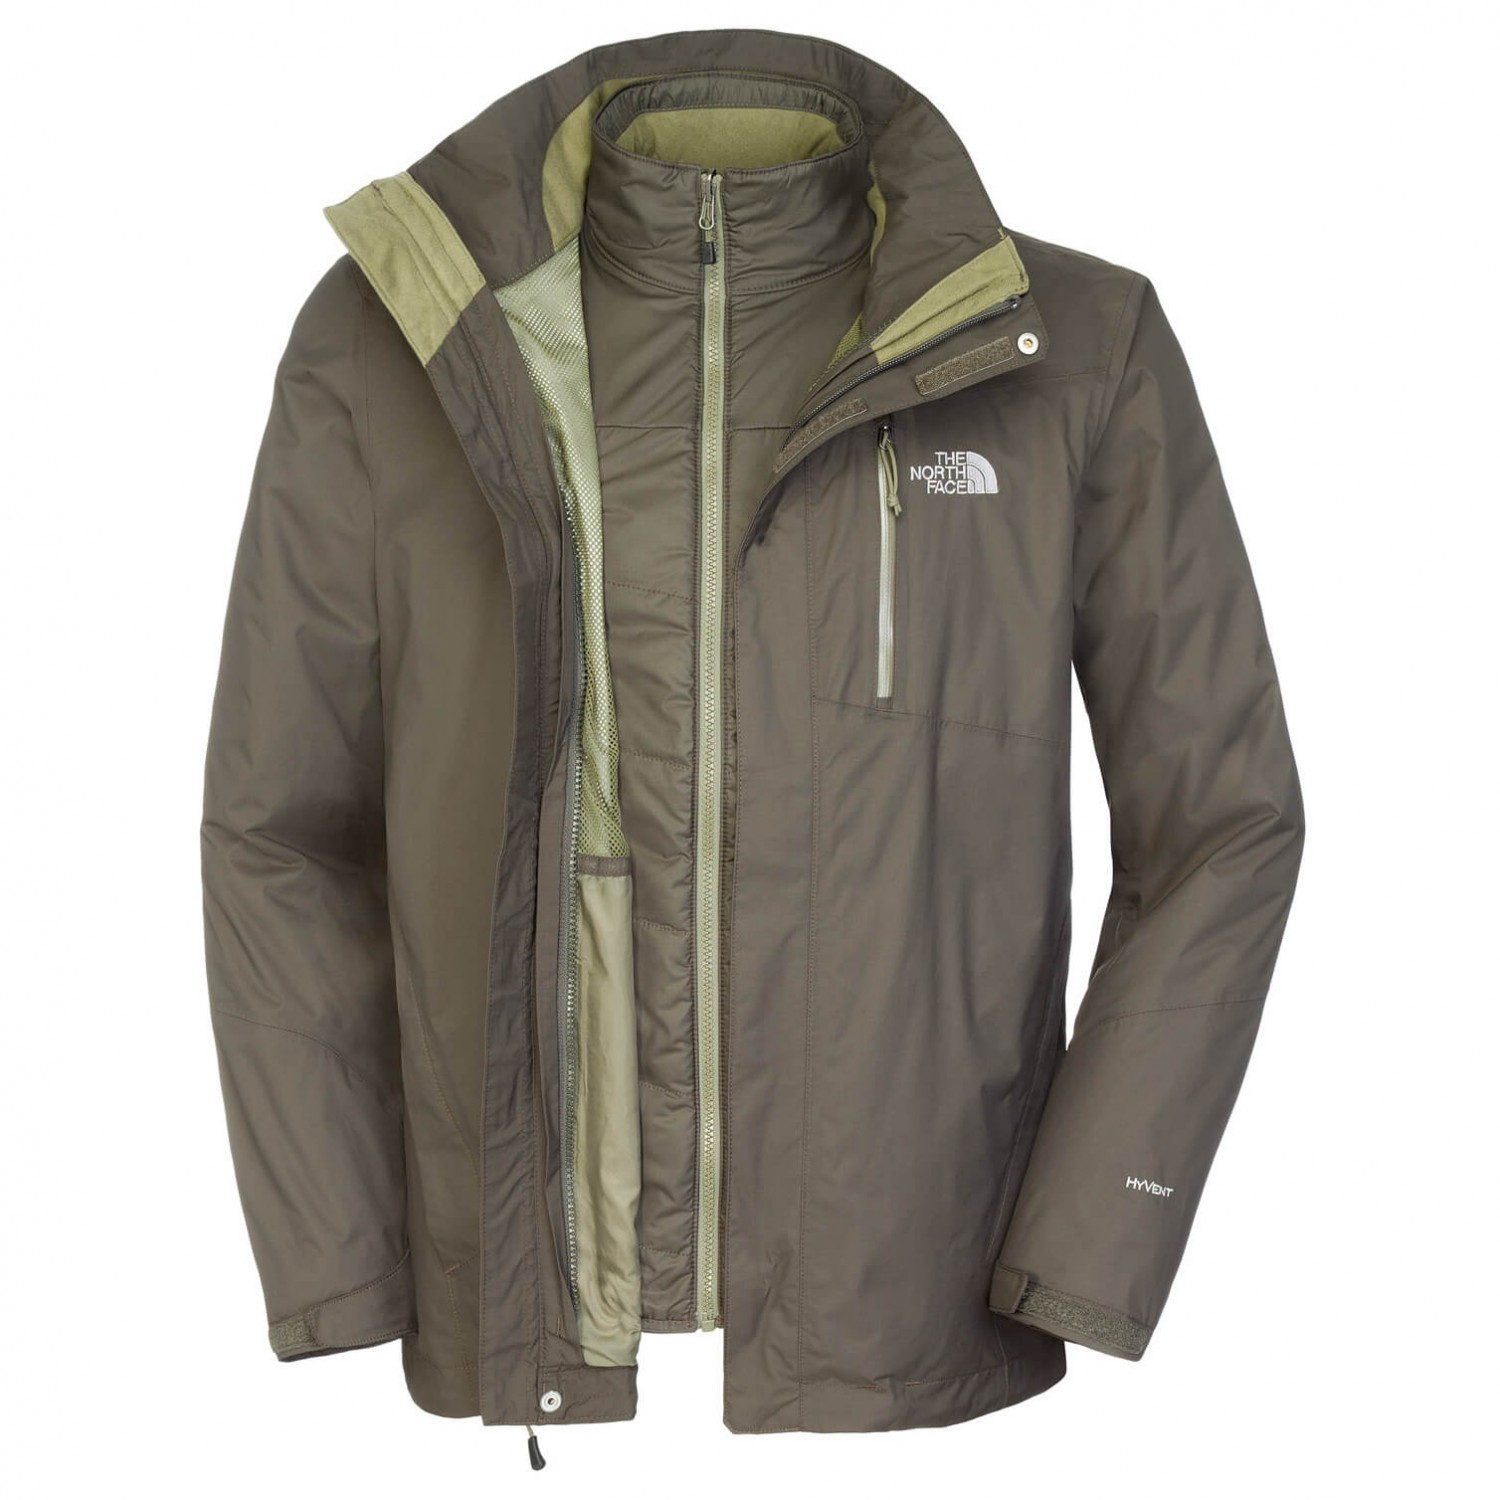 the north face solaris triclimate jacket 3 in 1 jacket. Black Bedroom Furniture Sets. Home Design Ideas